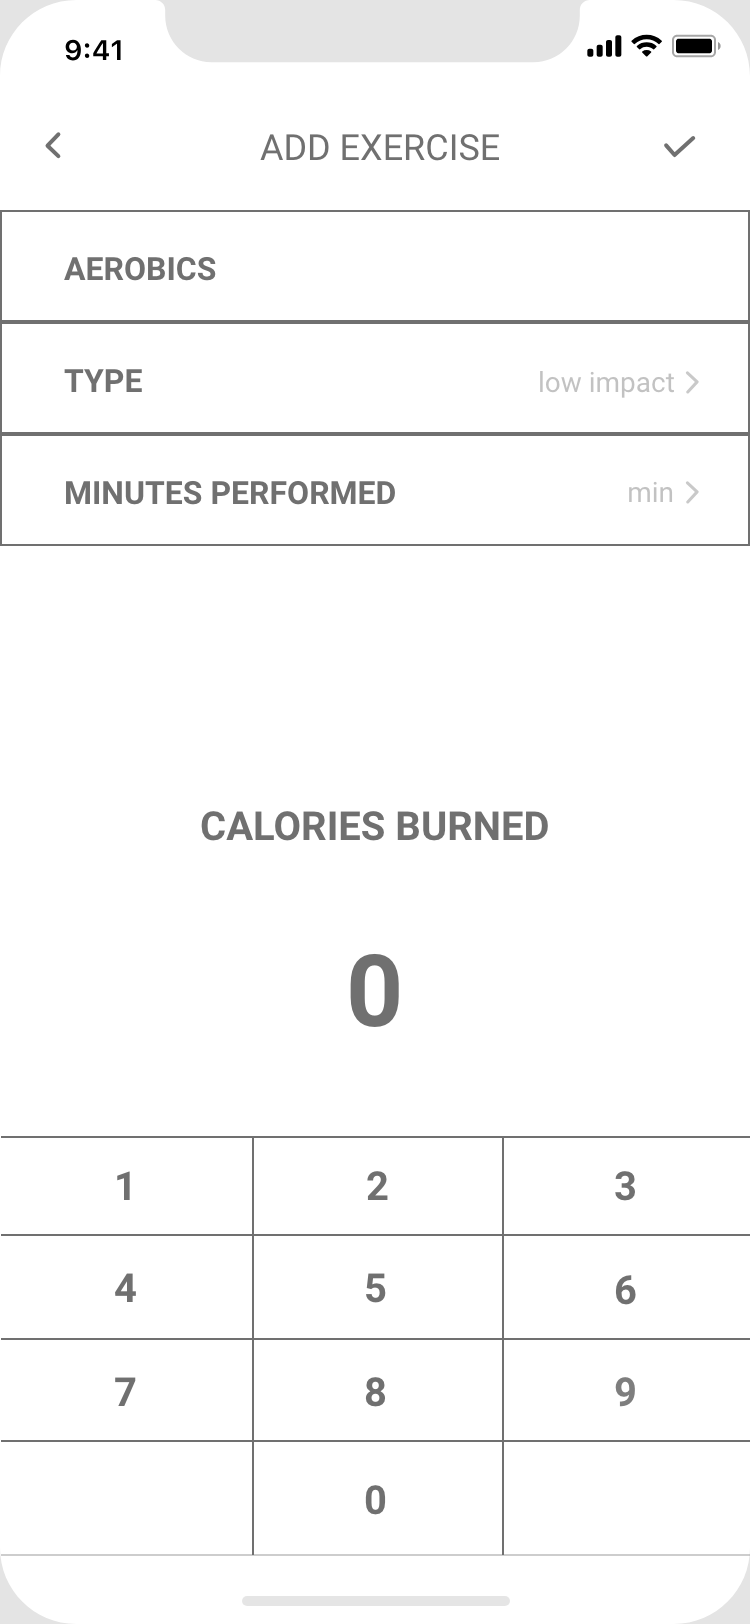 add exercise@2x.png